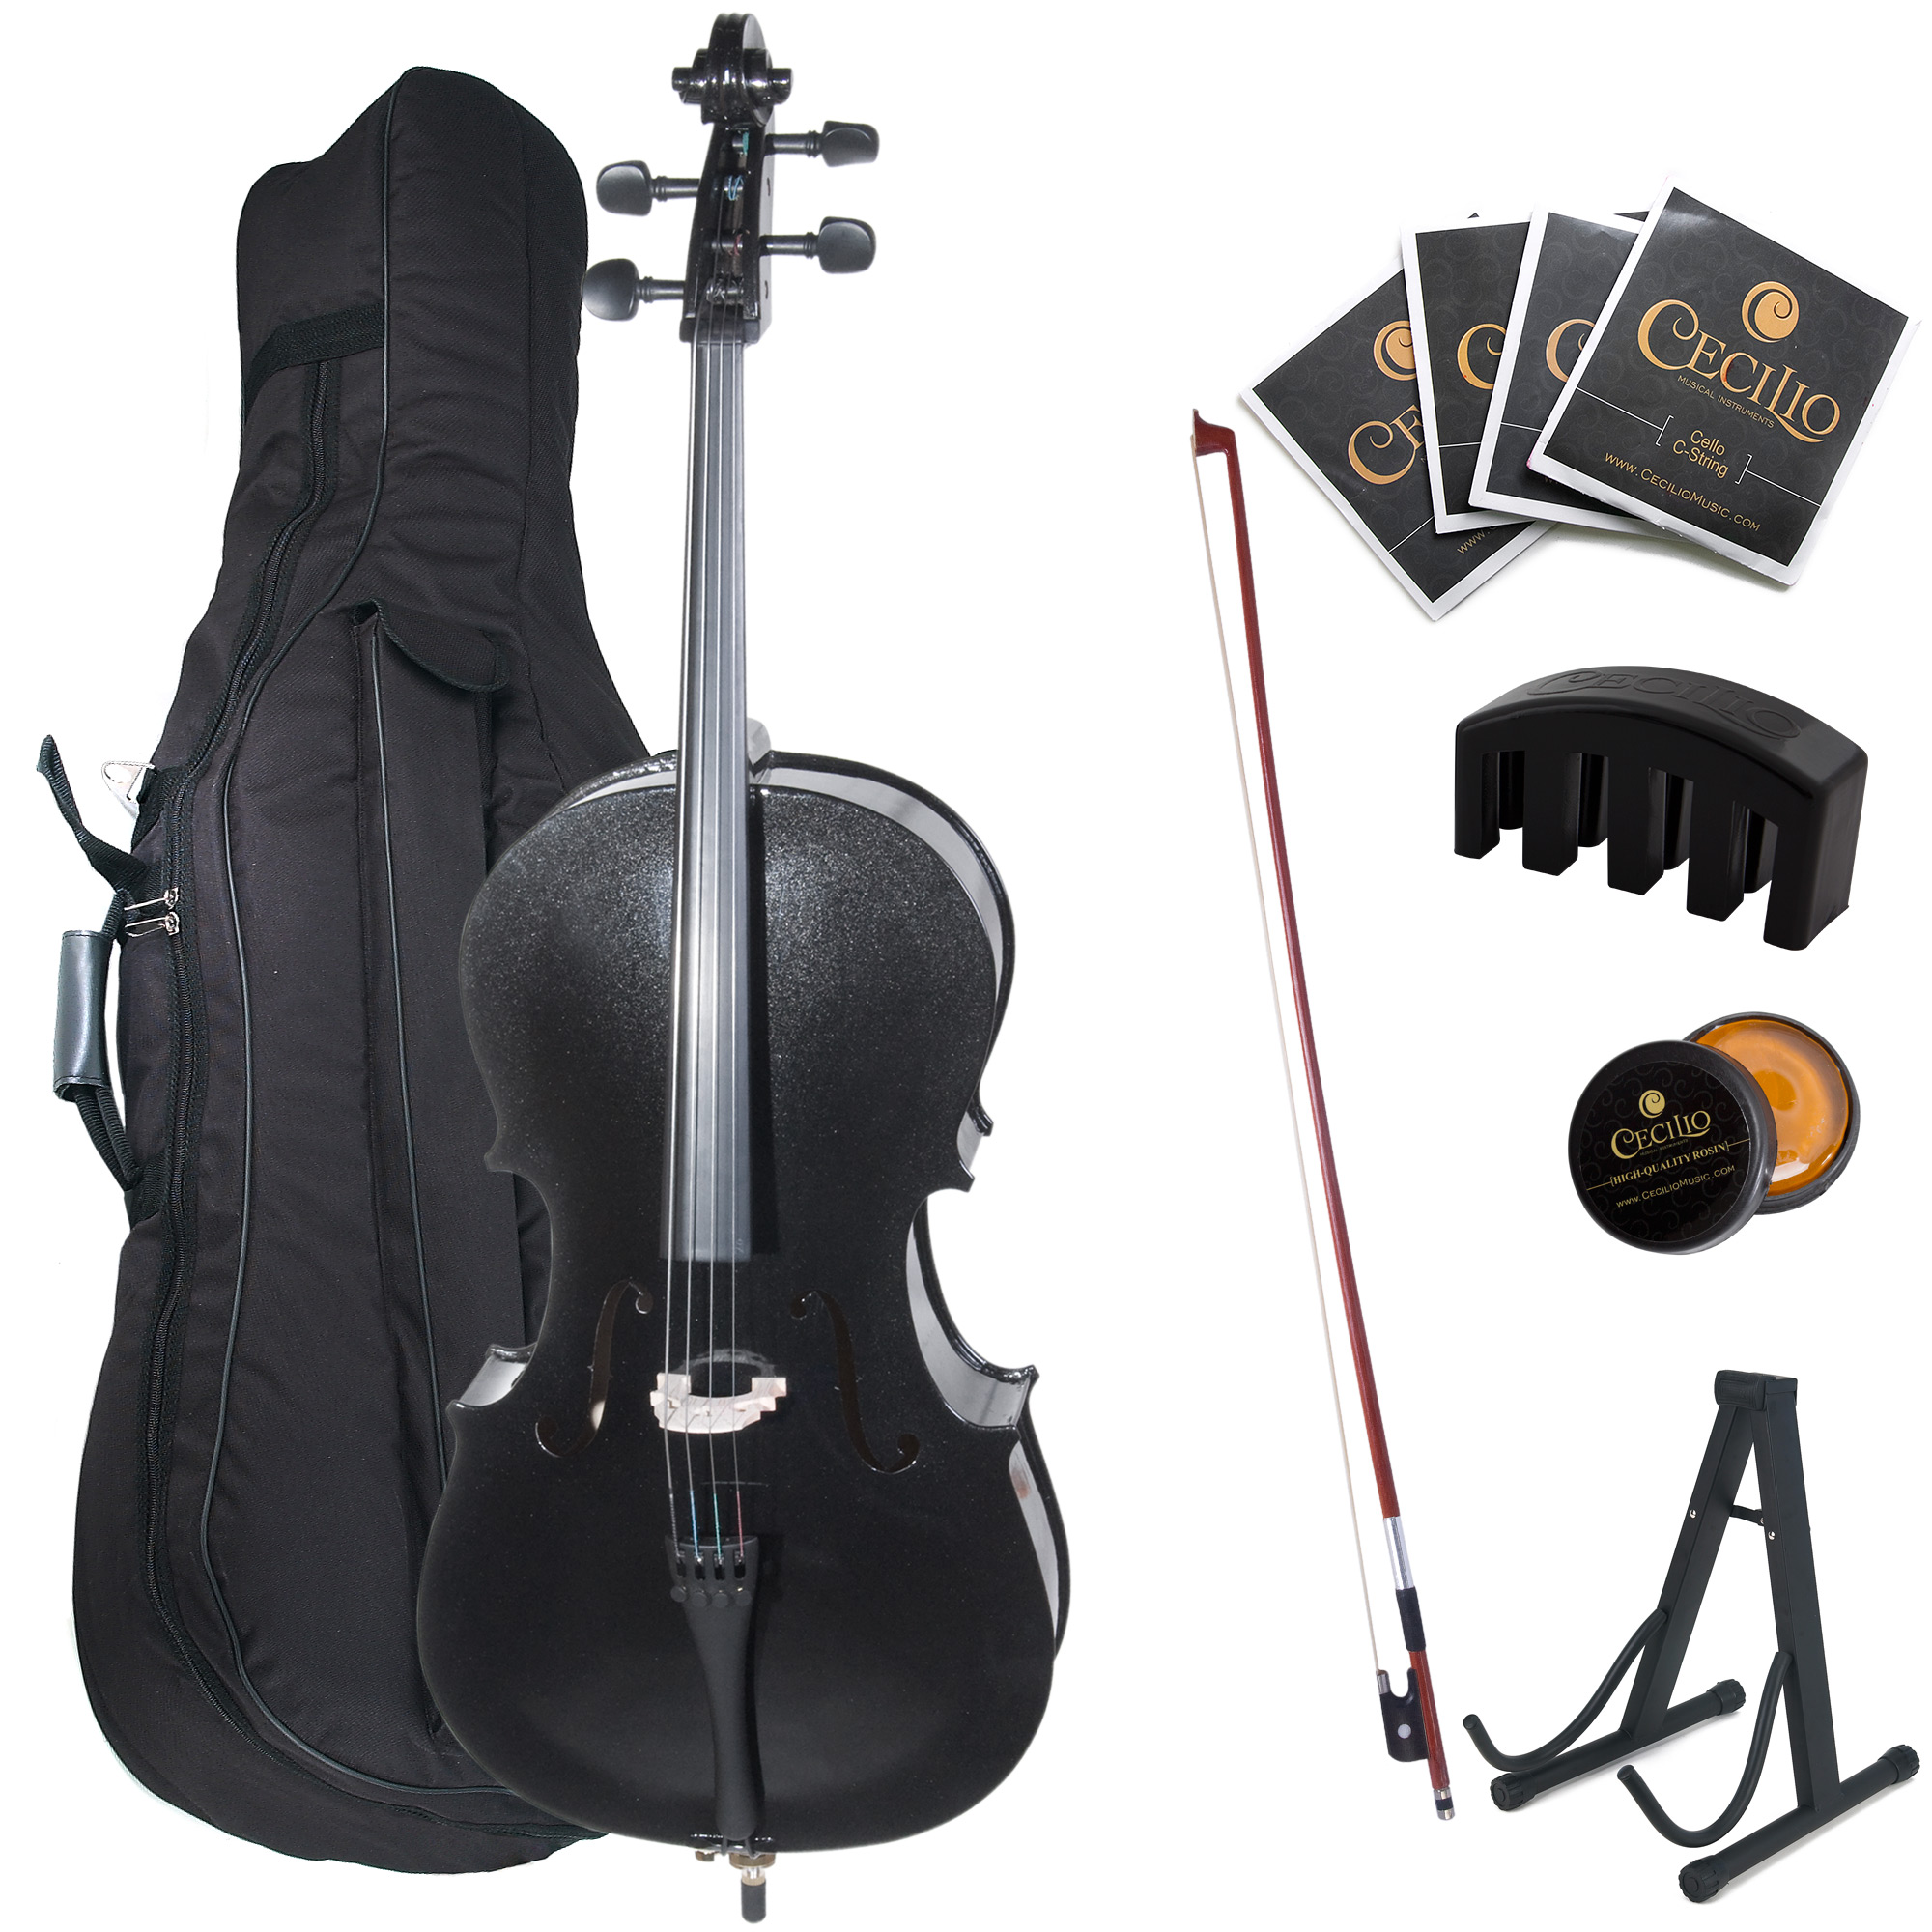 Cecilio Full Size 4/4 CCO-Black Student Cello w/ Cello Stand, Extra Set Strings, Bow, Rosin, Bridge, Cello Mute & Soft Case